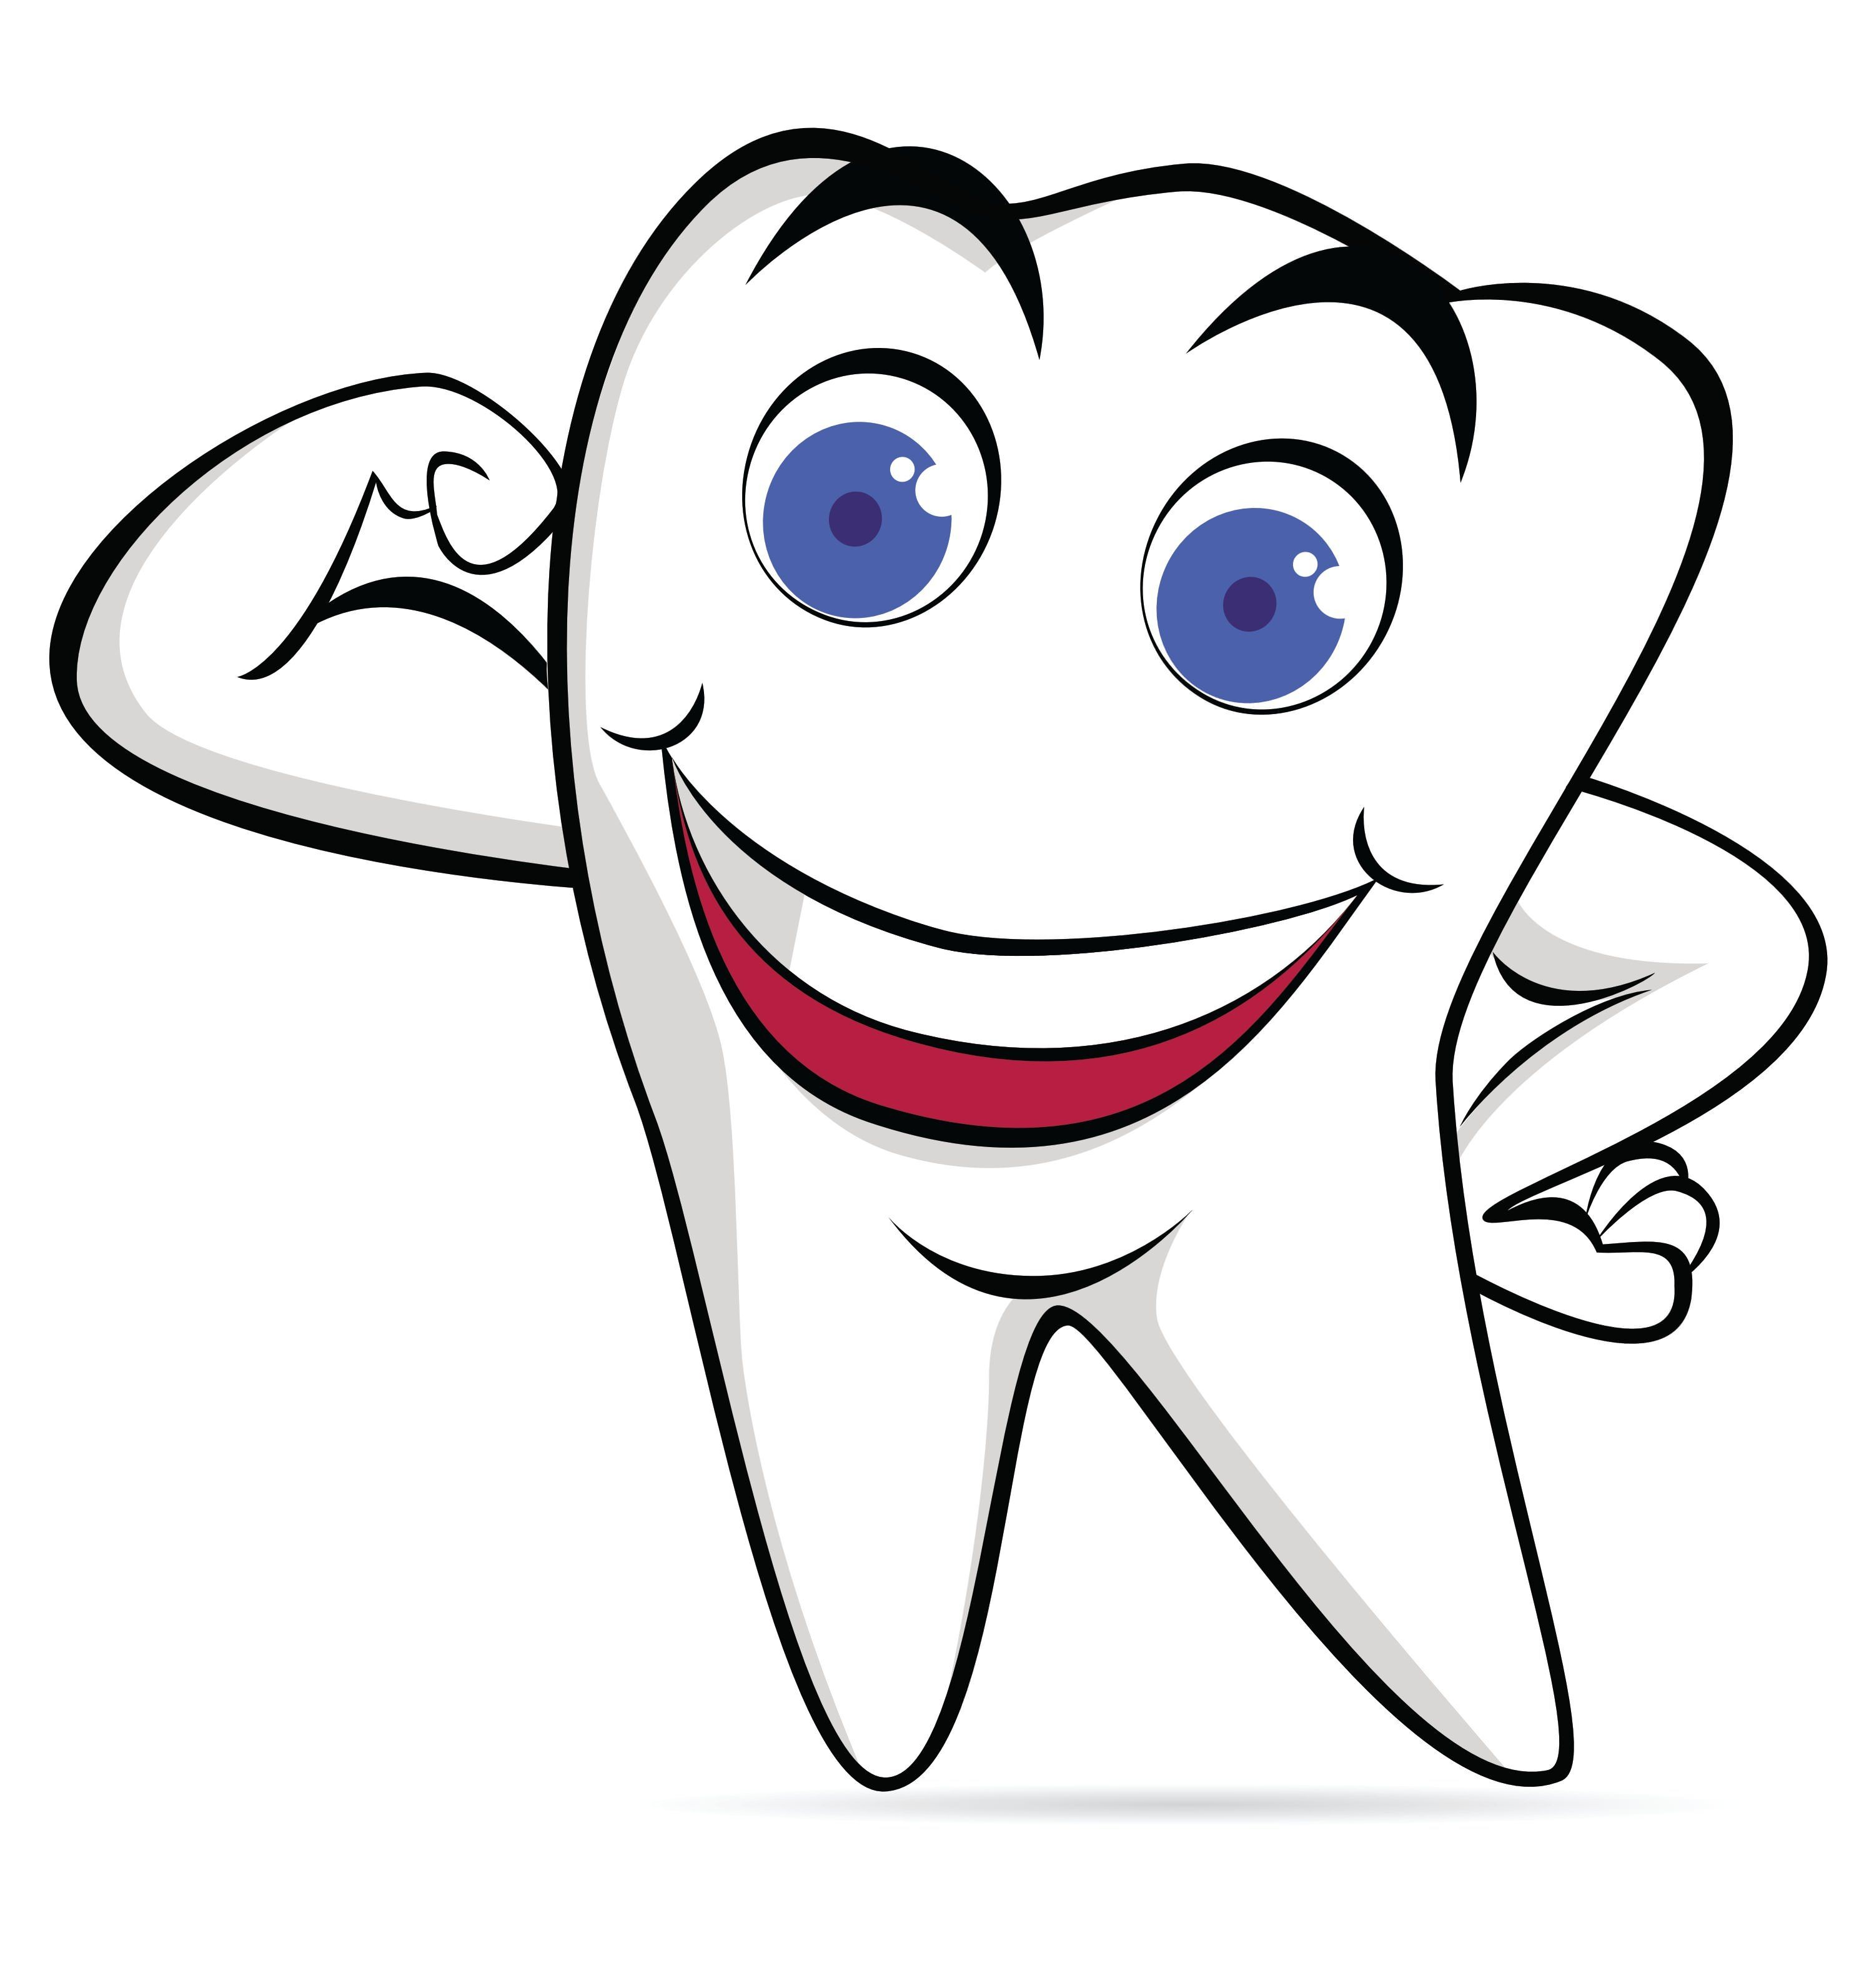 Cartoon tooth clipart free download In Clipart Cartoon Teeth Dental Strong Tooth 2 | Clip Art free download